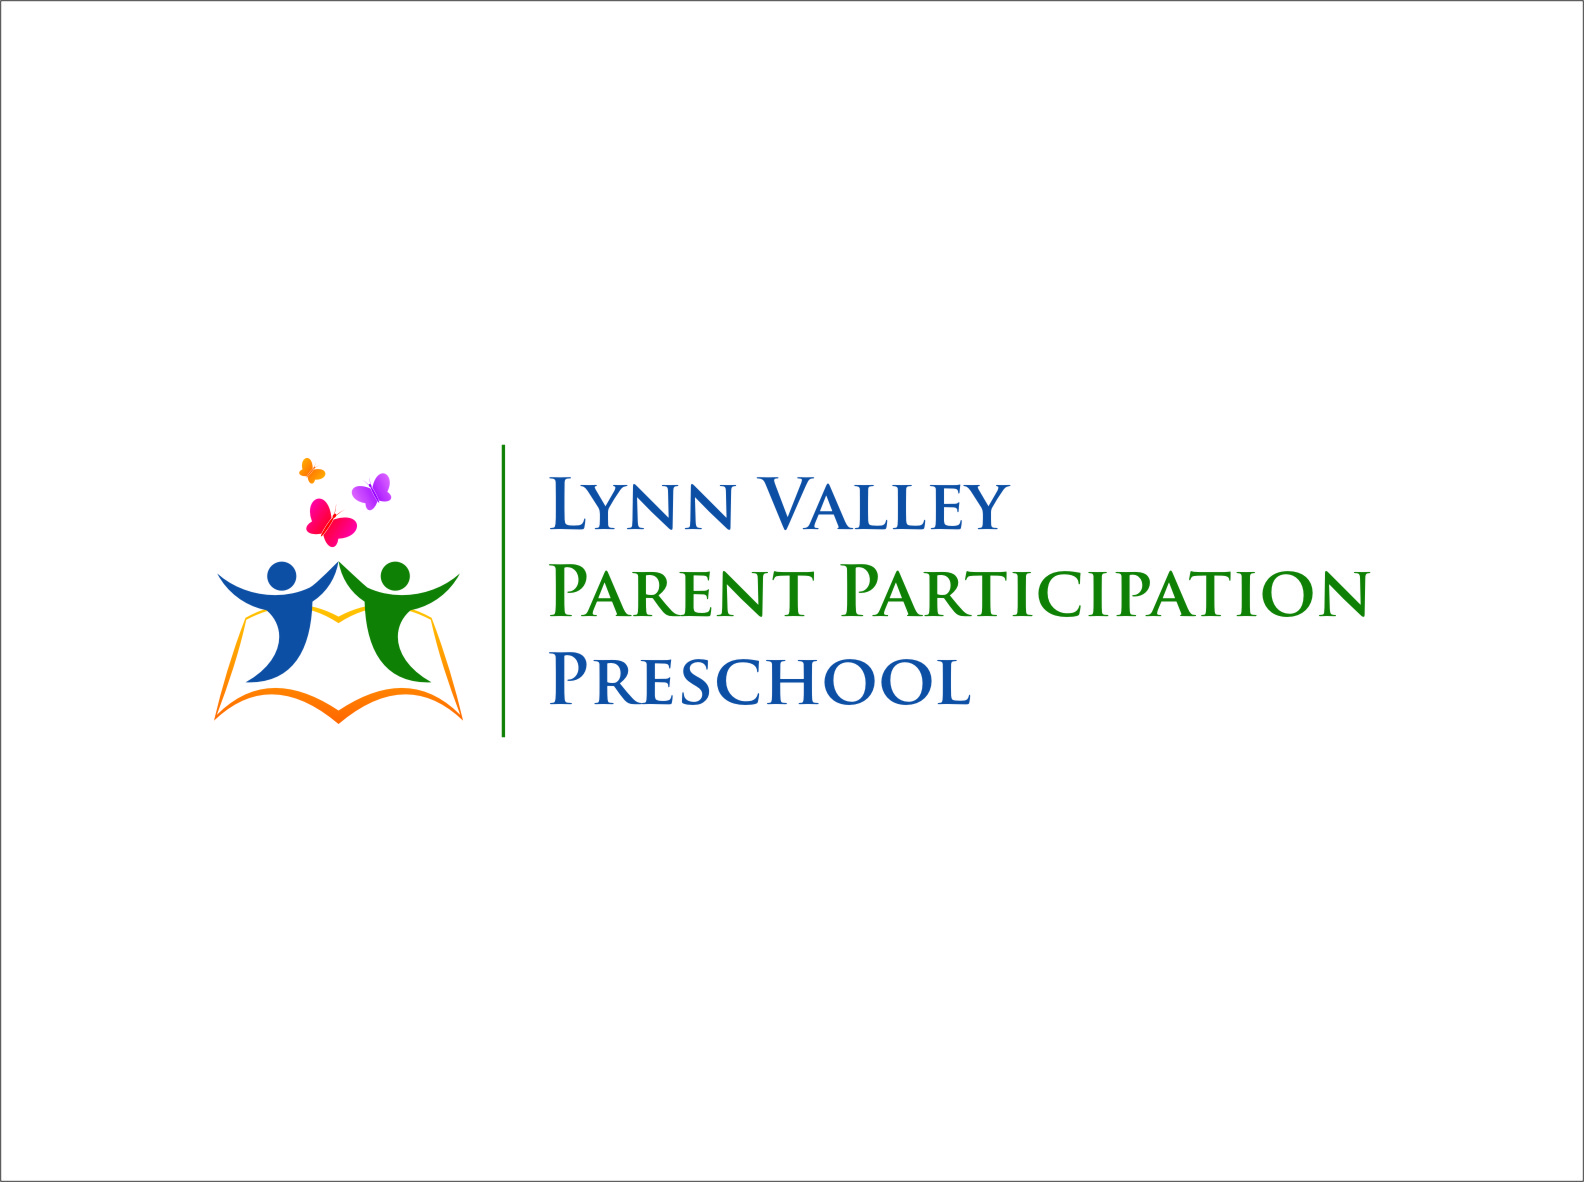 Logo Design by Ngepet_art - Entry No. 75 in the Logo Design Contest New Logo Design for Lynn Valley Parent Participation Preschool.